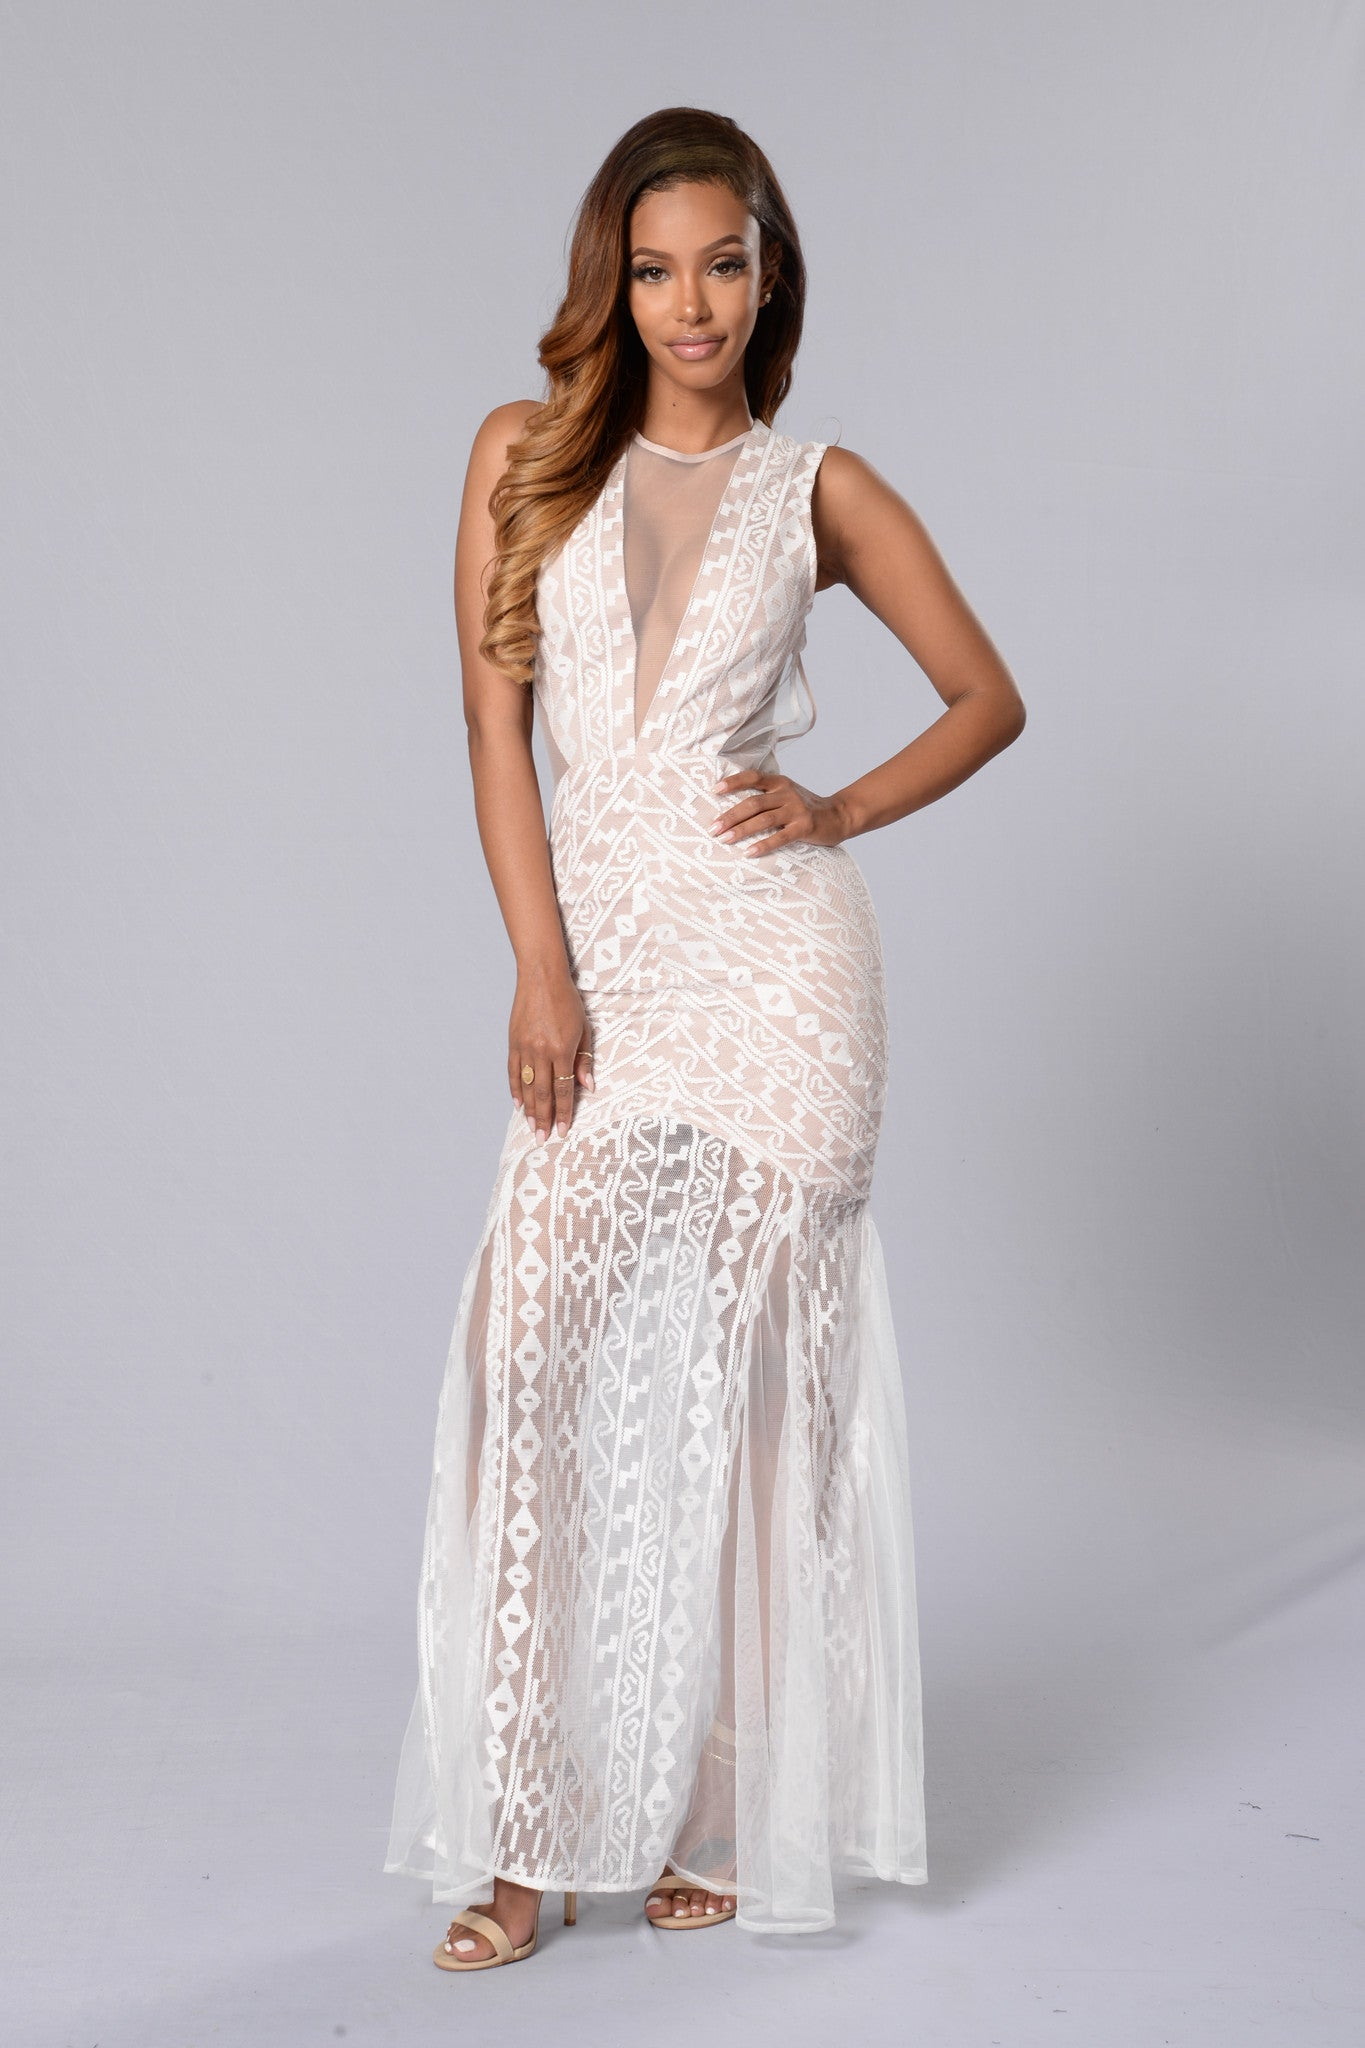 Black Tie Event Dress White